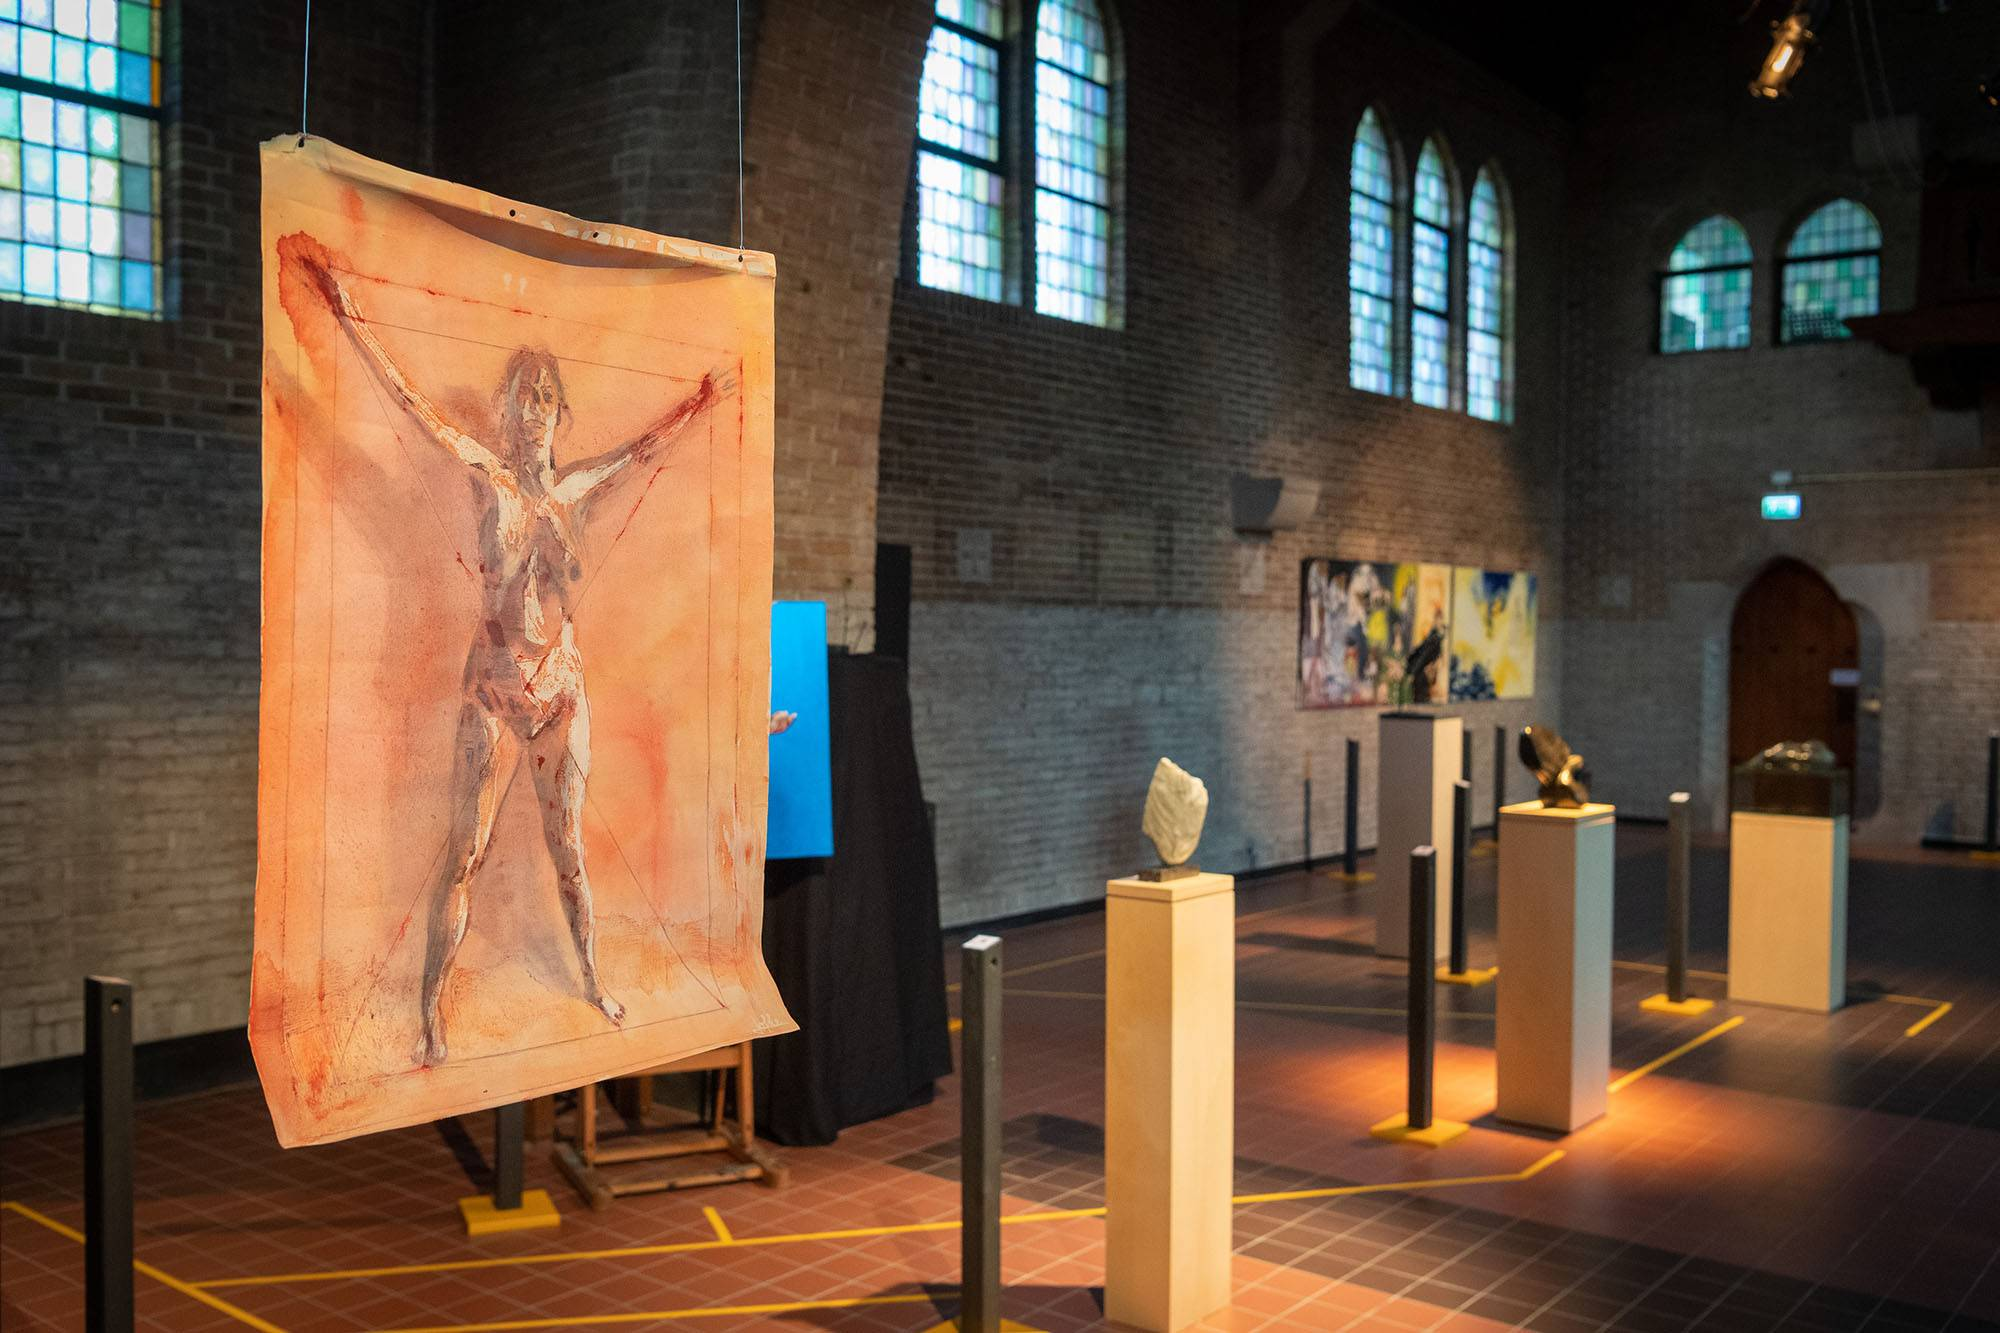 Impression exhibition First see then believe in the Mariëngaarde Chapel 2019 by Jofke.